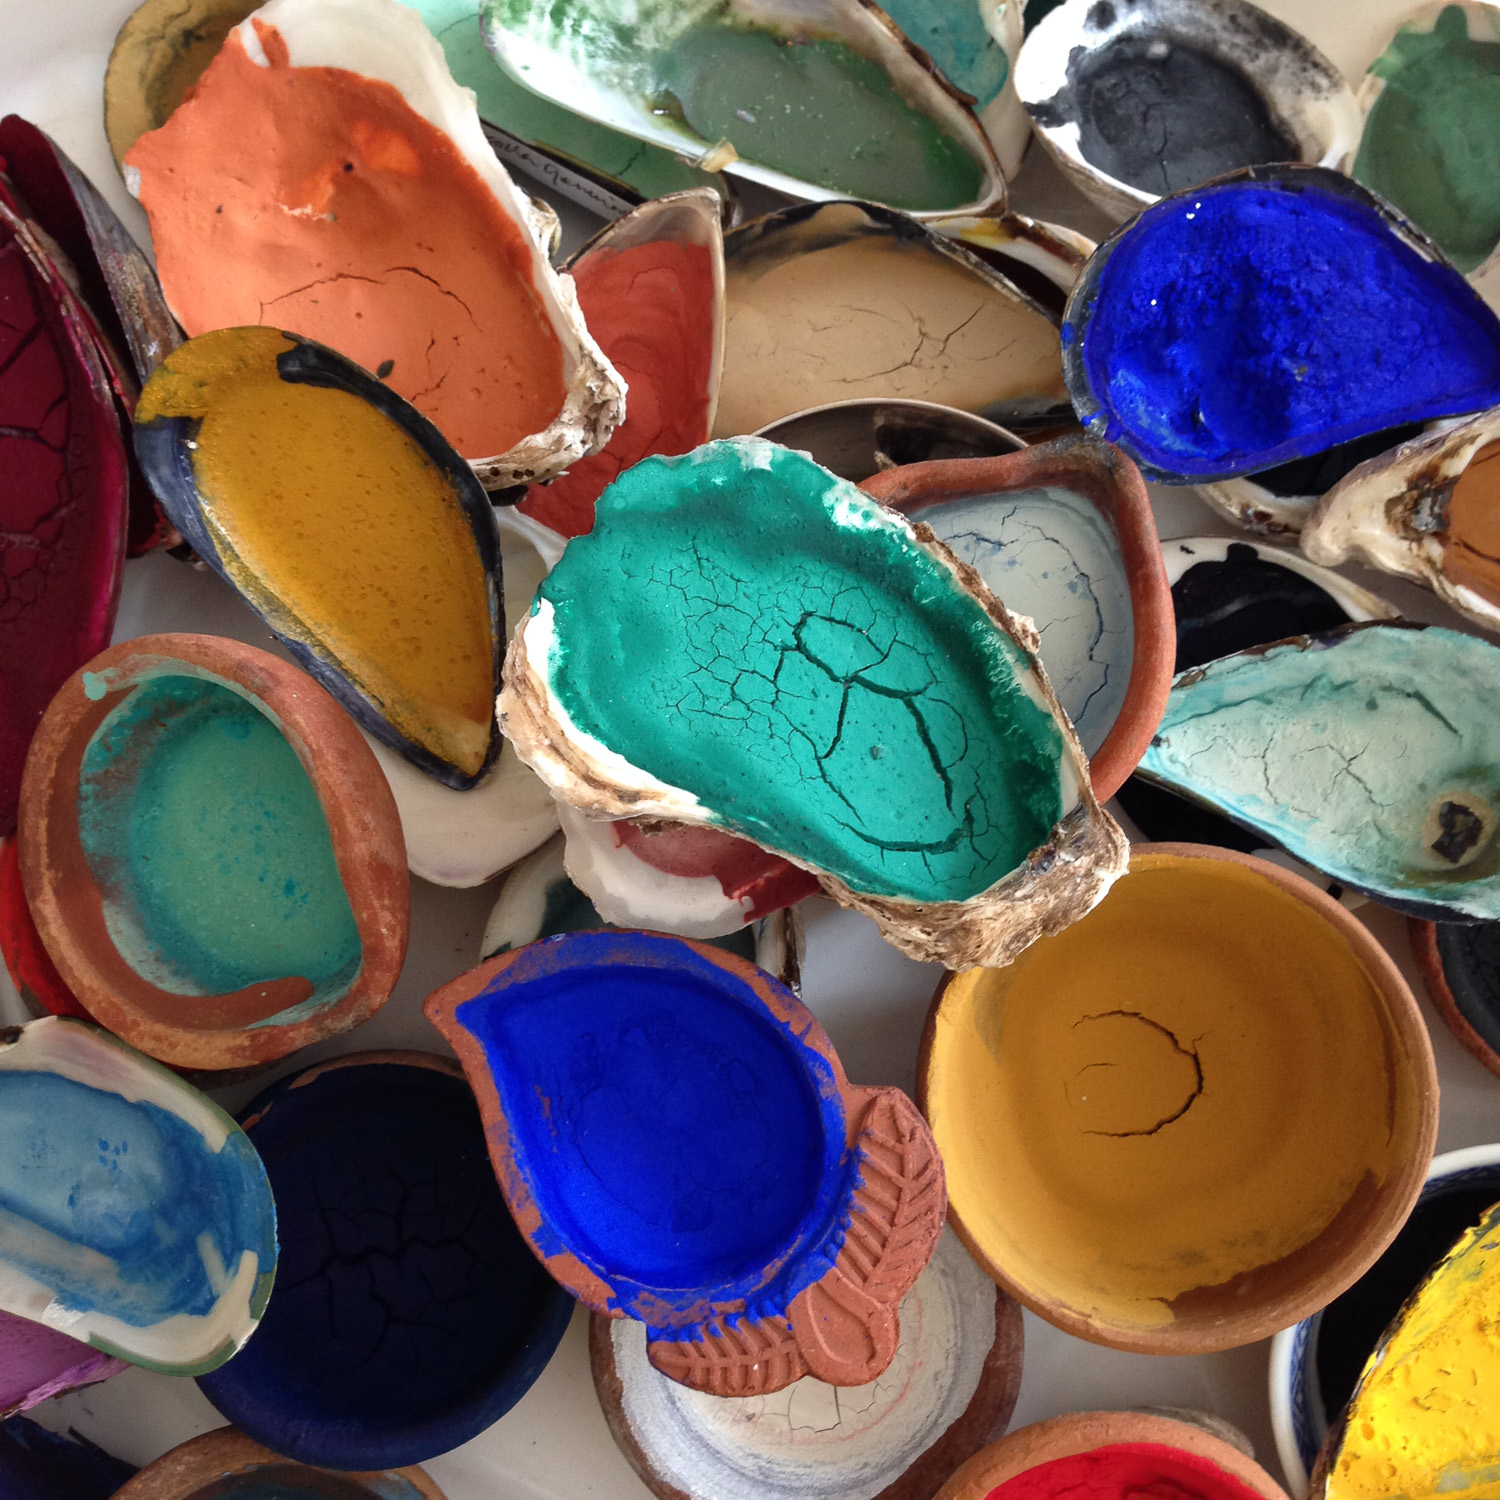 Shells of prepared opaque mineral pigments, await reviving with water.